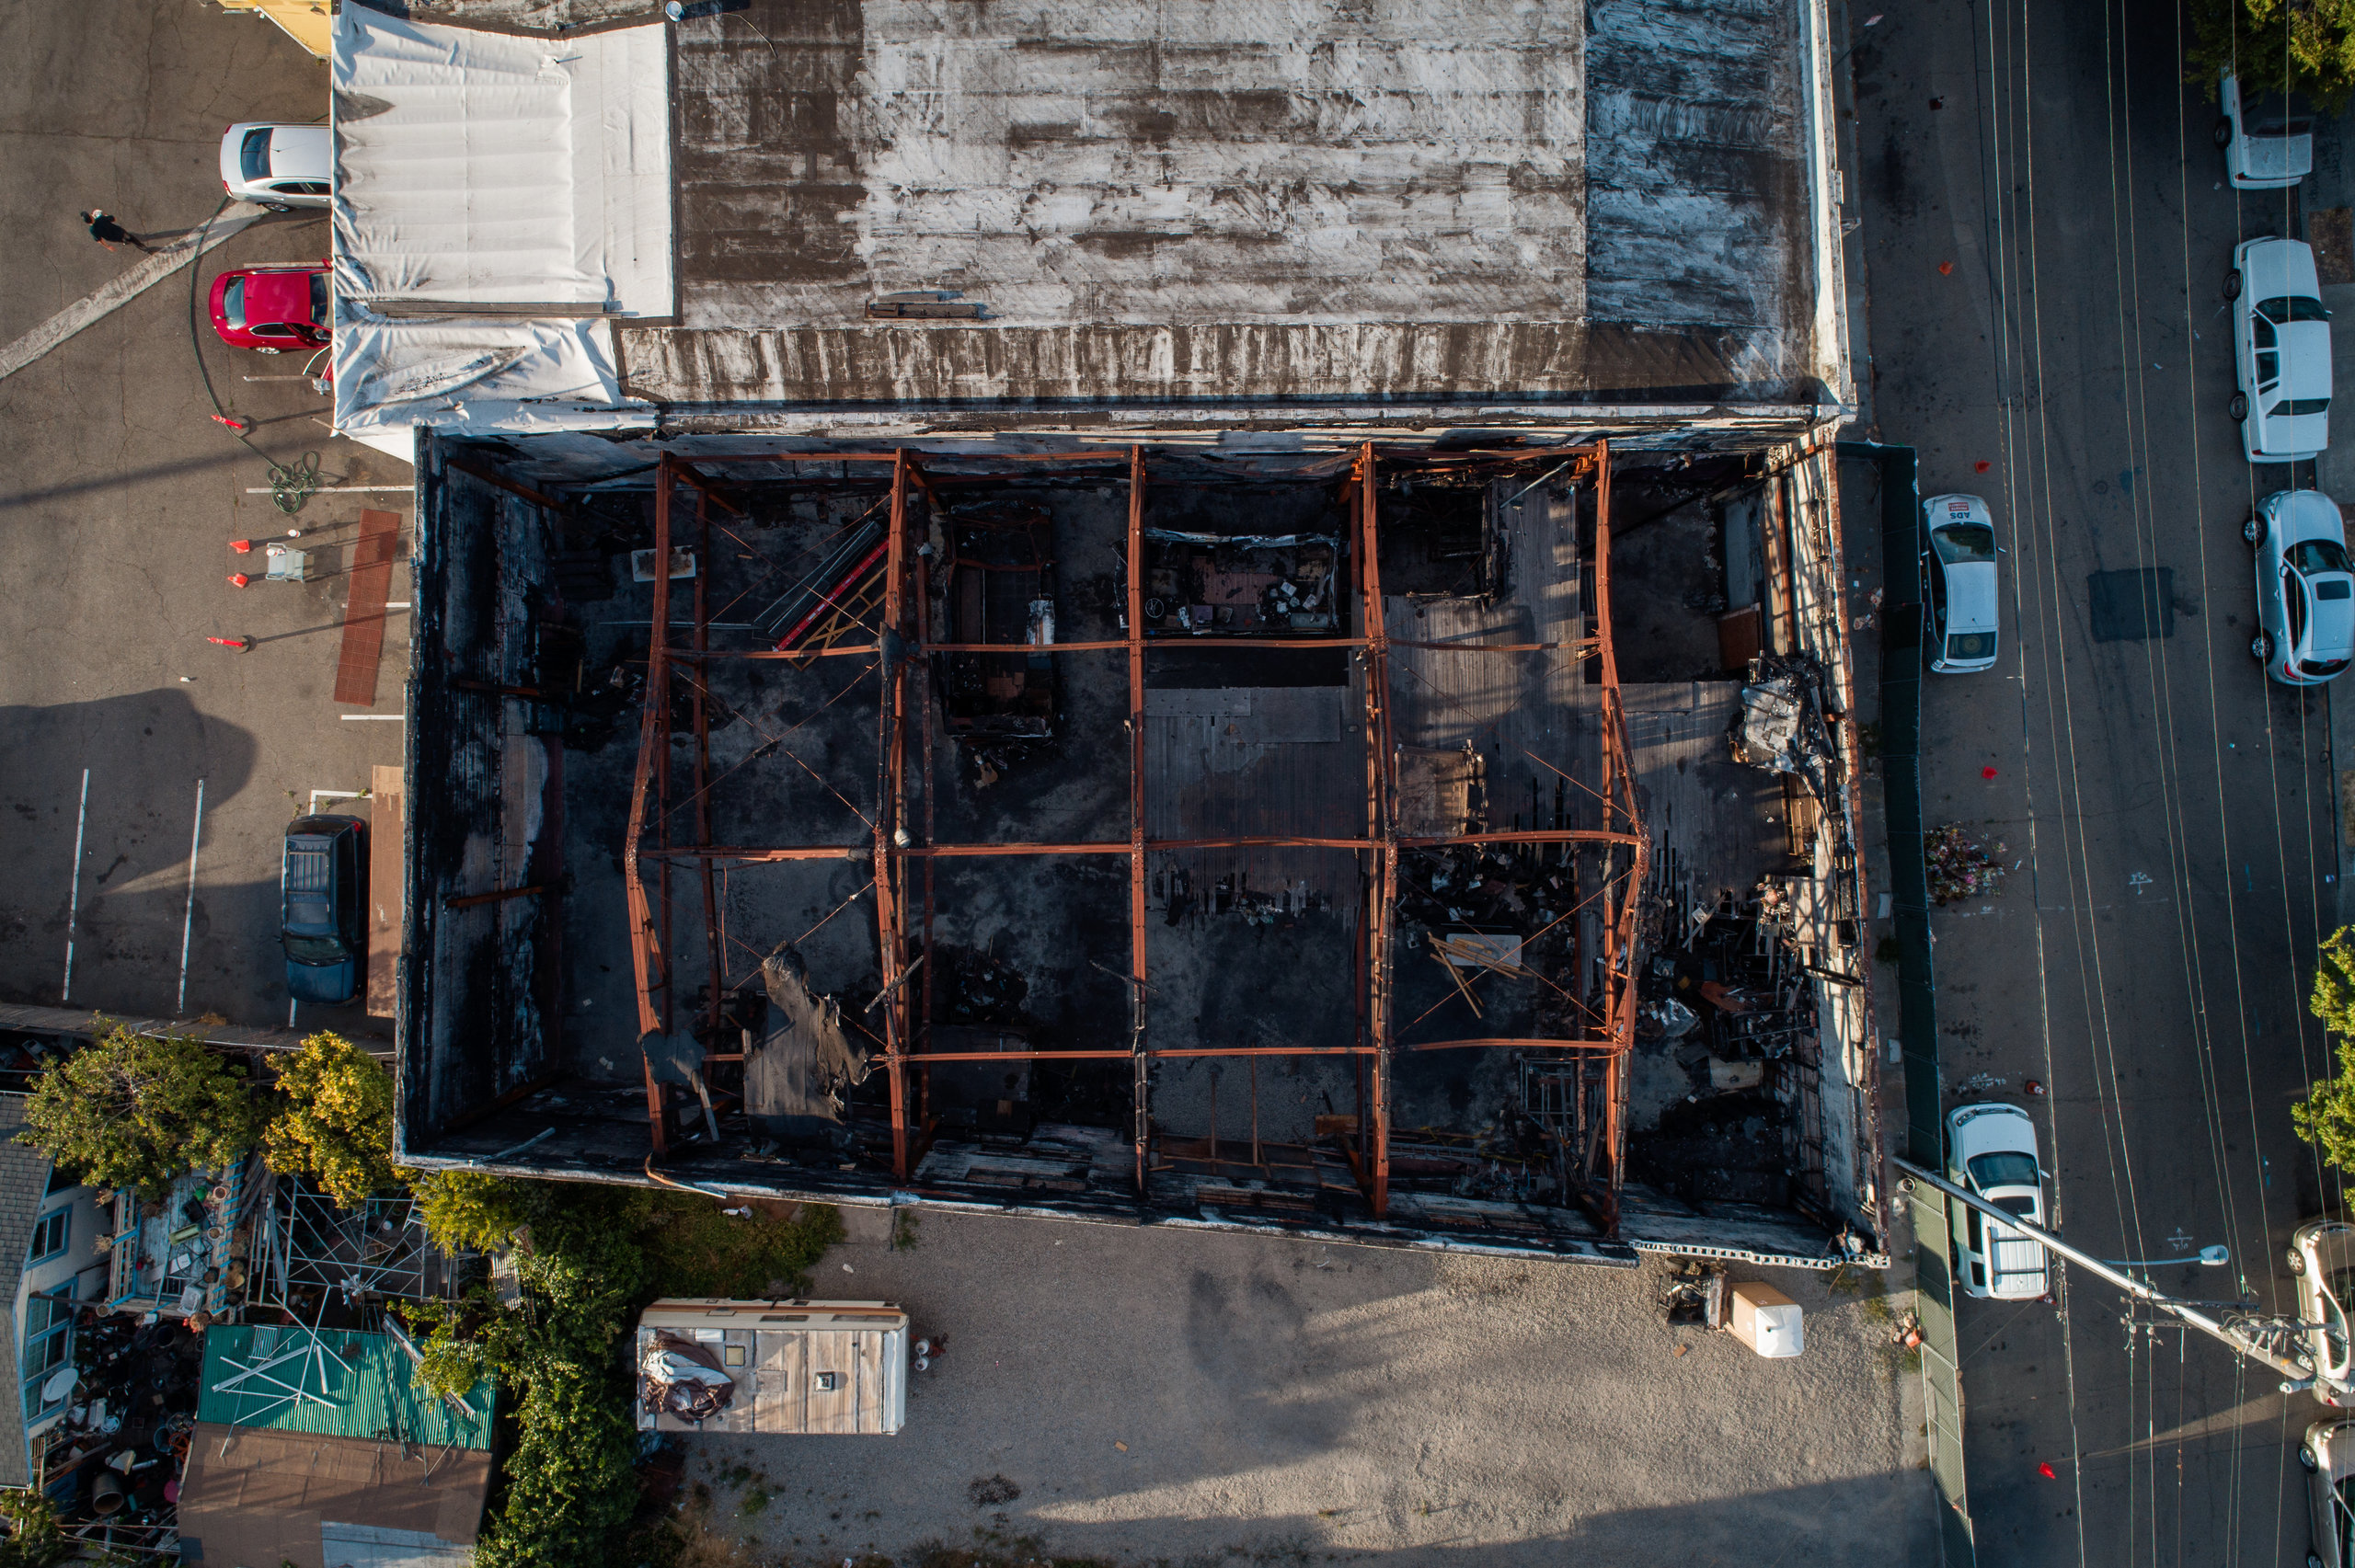 The 2016 Ghost Ship fire killed 36 people.